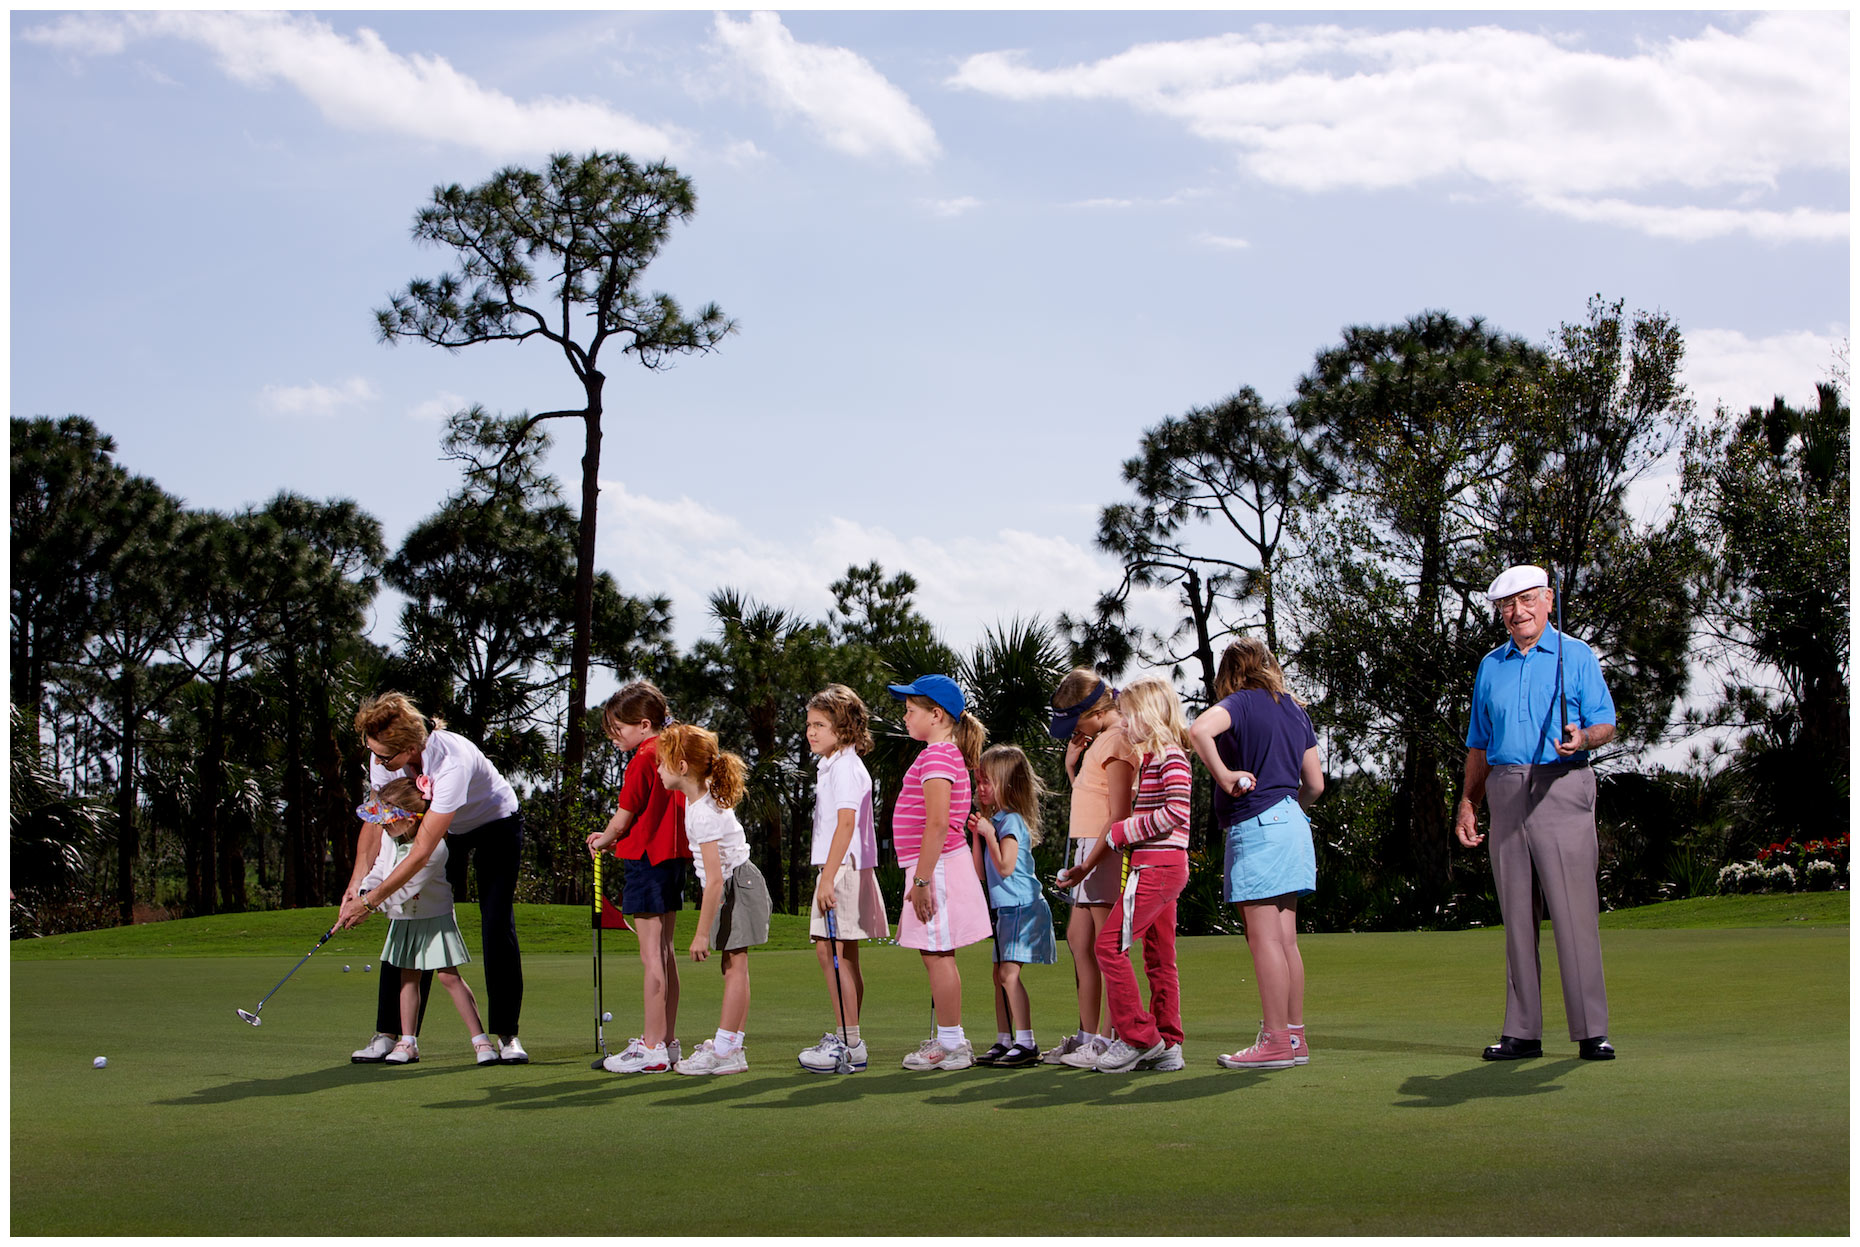 Errie Ball, photographed at the Willoughby Golf Club in Stuart, Florida for Golf Digest,